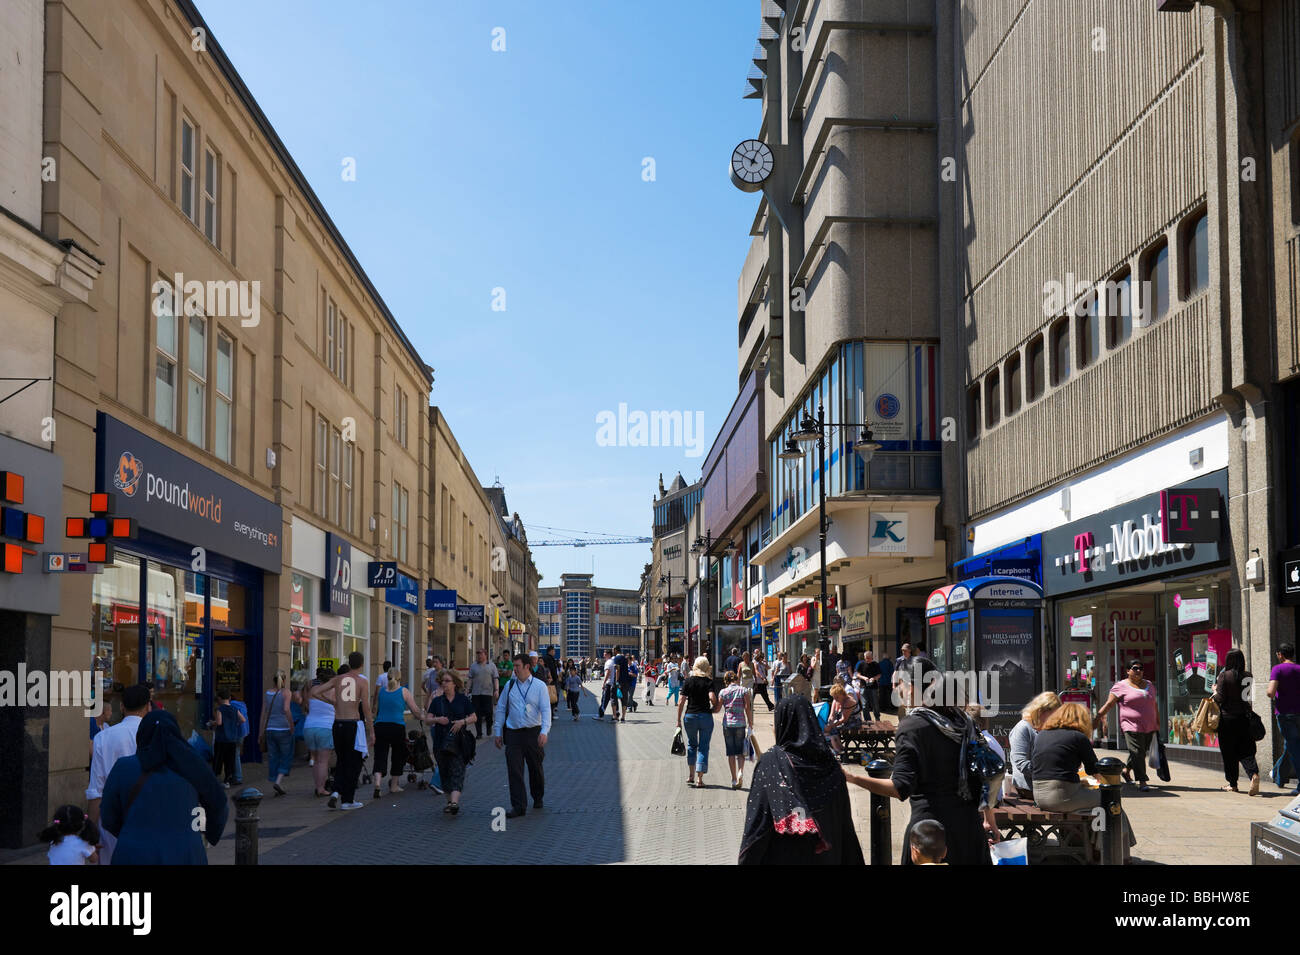 Shops on Kirkgate in the City Centre, Bradford, West Yorkshire, England - Stock Image